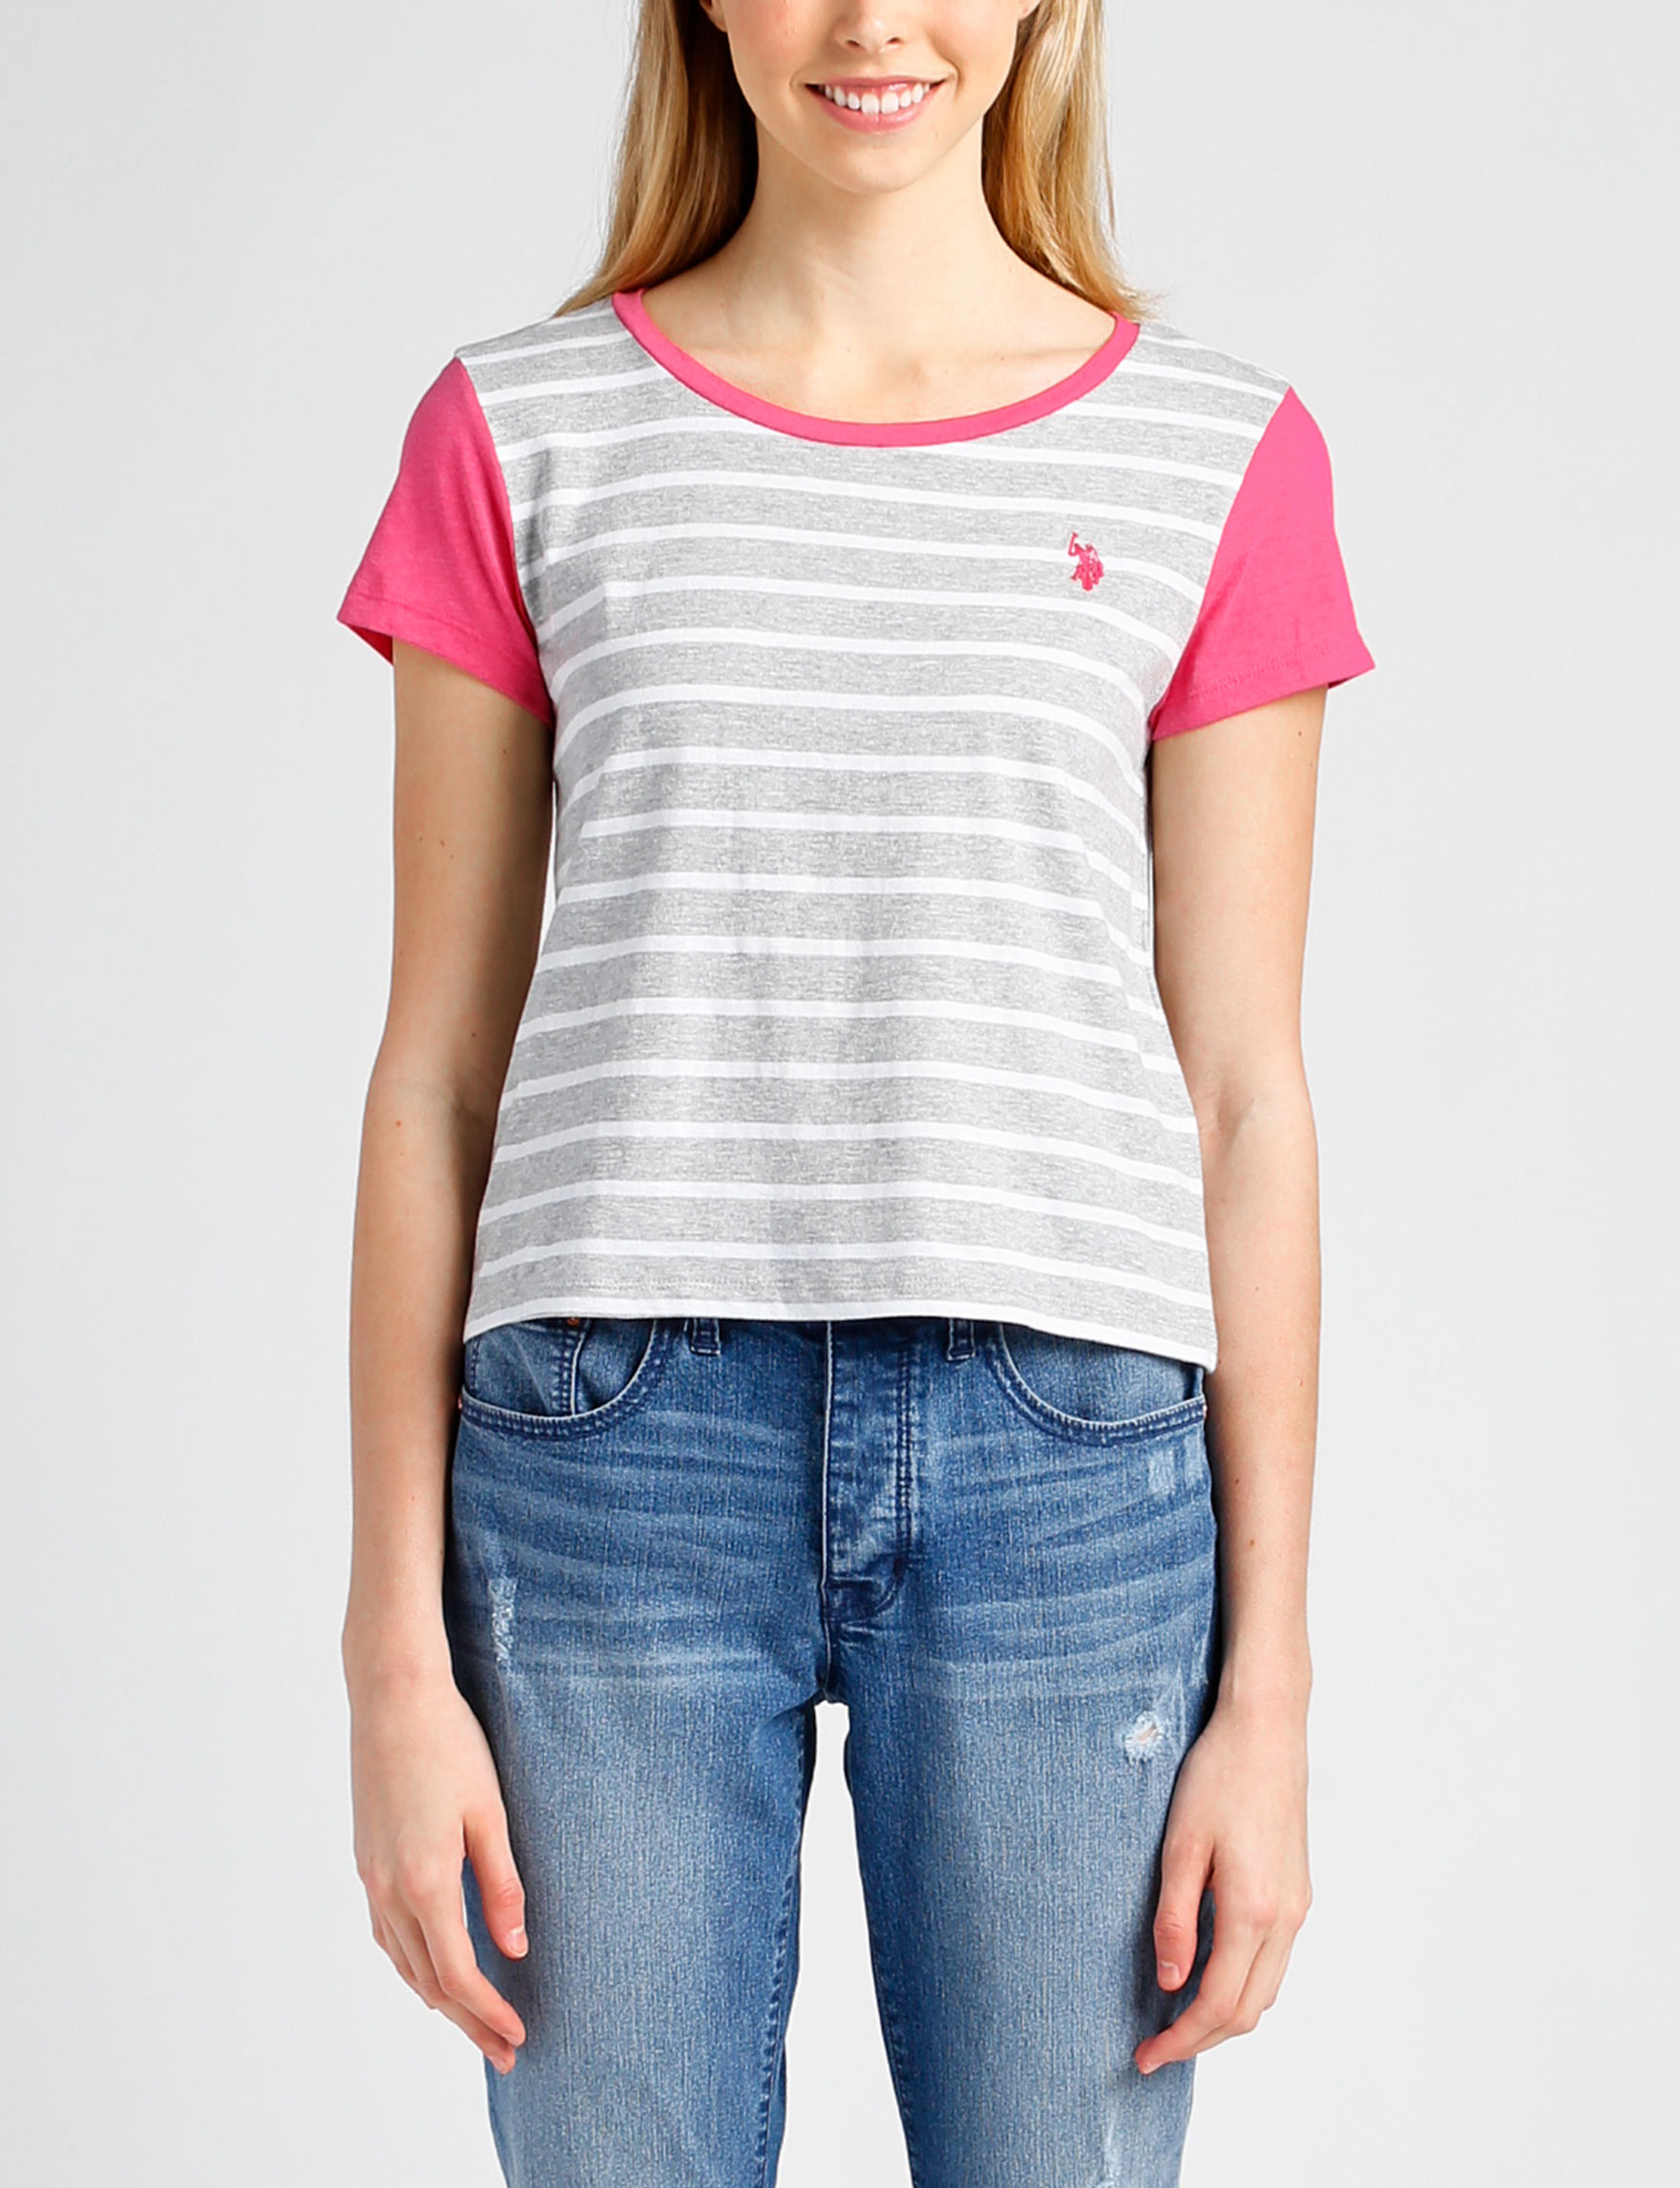 U.S. Polo Assn. Grey / Pink Tees & Tanks